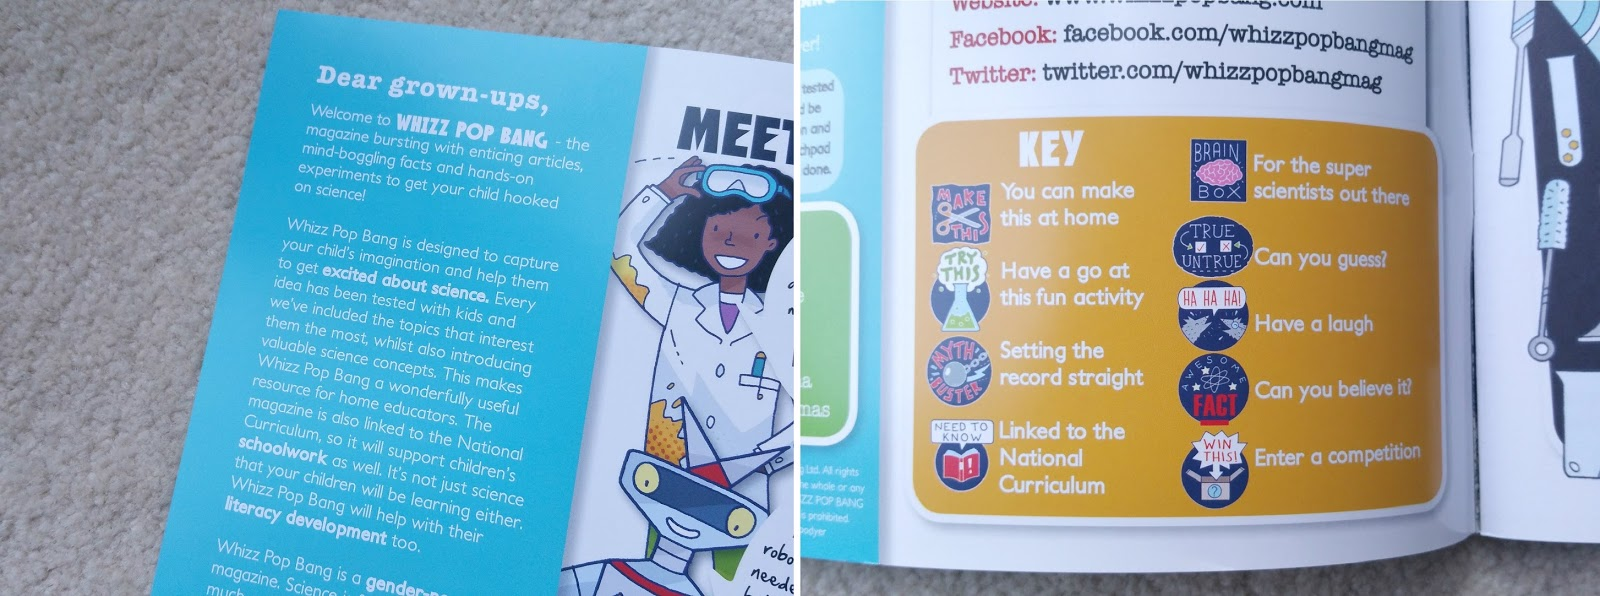 Whizz Pop Bang Science Magazine for Kids, Children educational magazine, subscription magazine